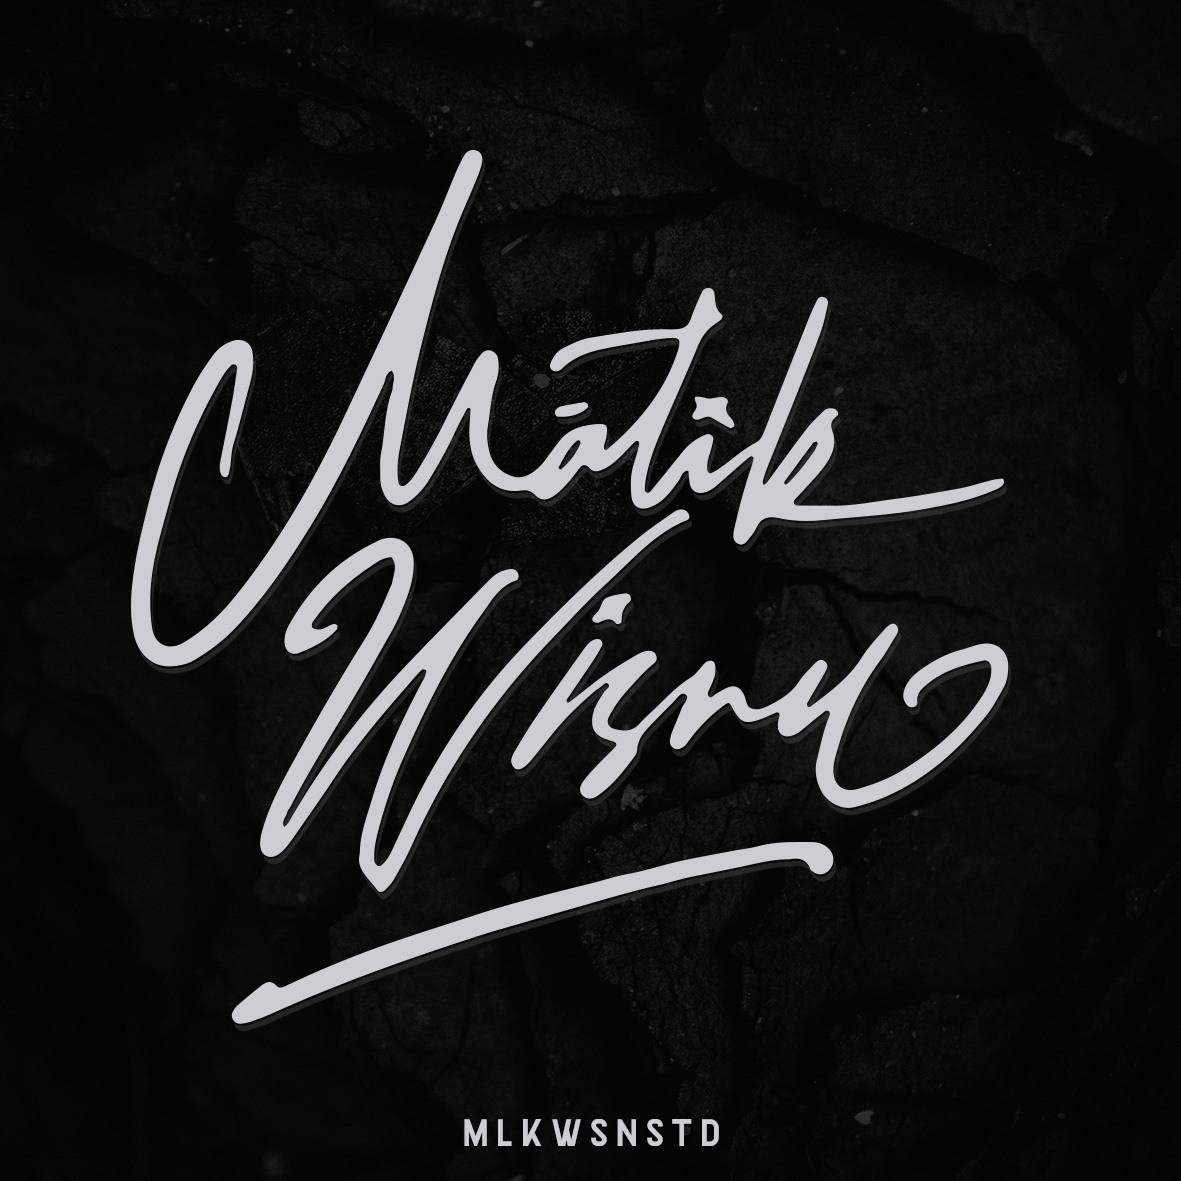 MLKWSN studio's profile picture